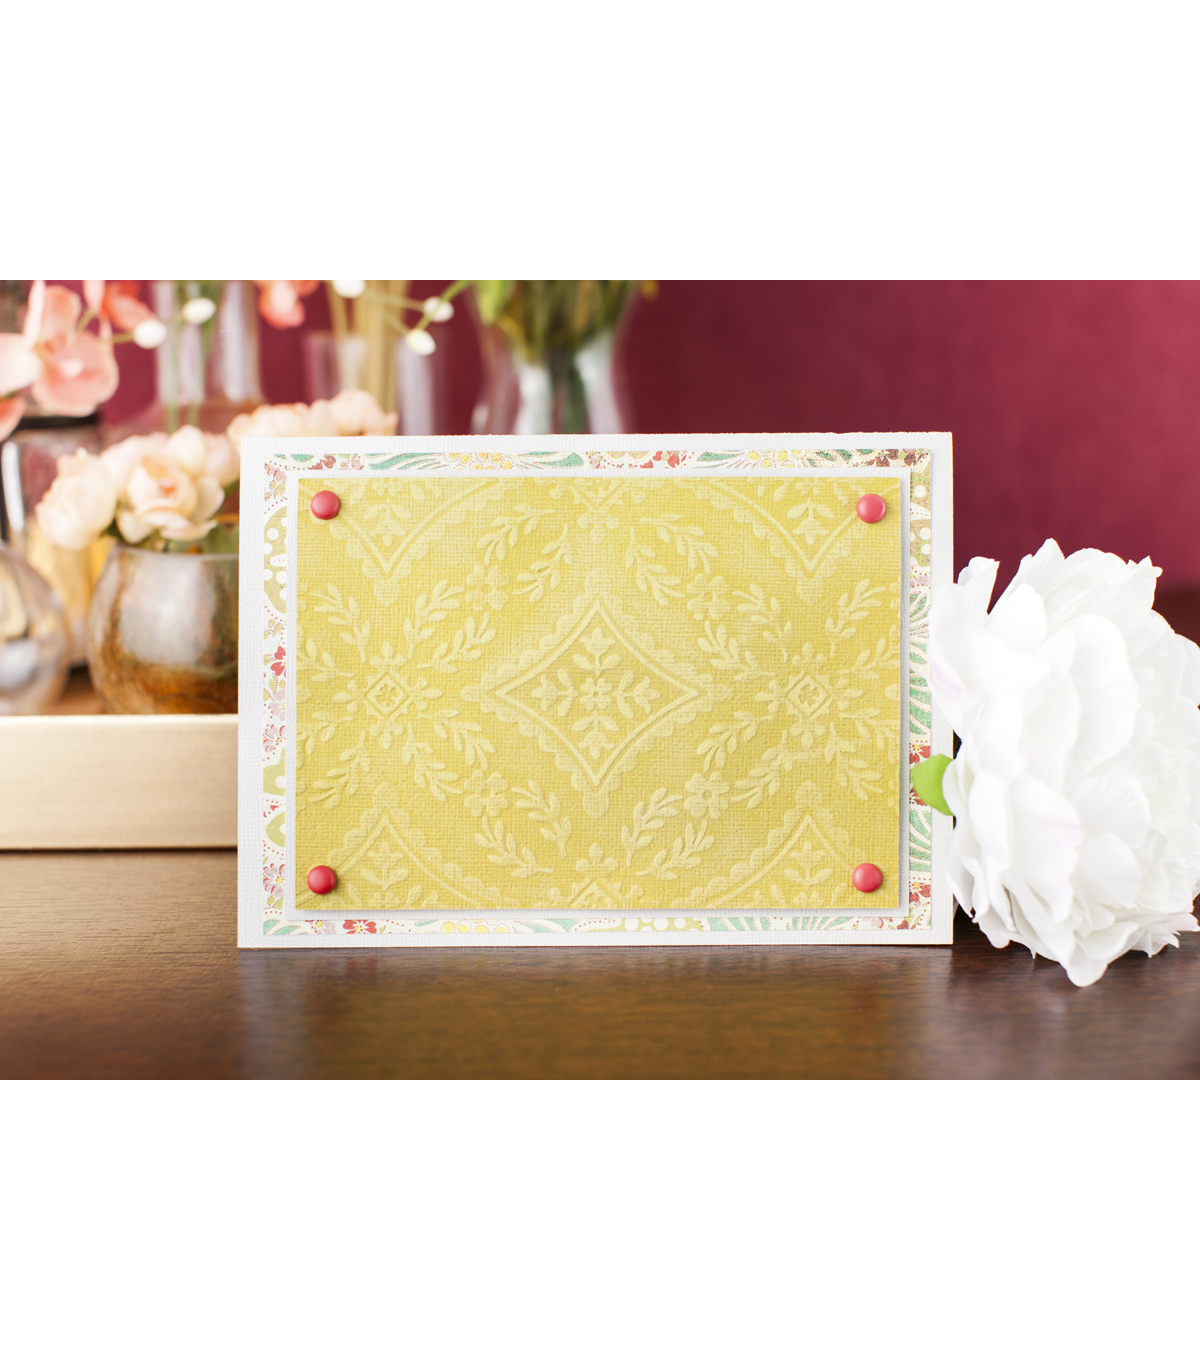 Cricut Cuttlebug Anna Griffin Diamond Flourish 5x7 Embossing Folder